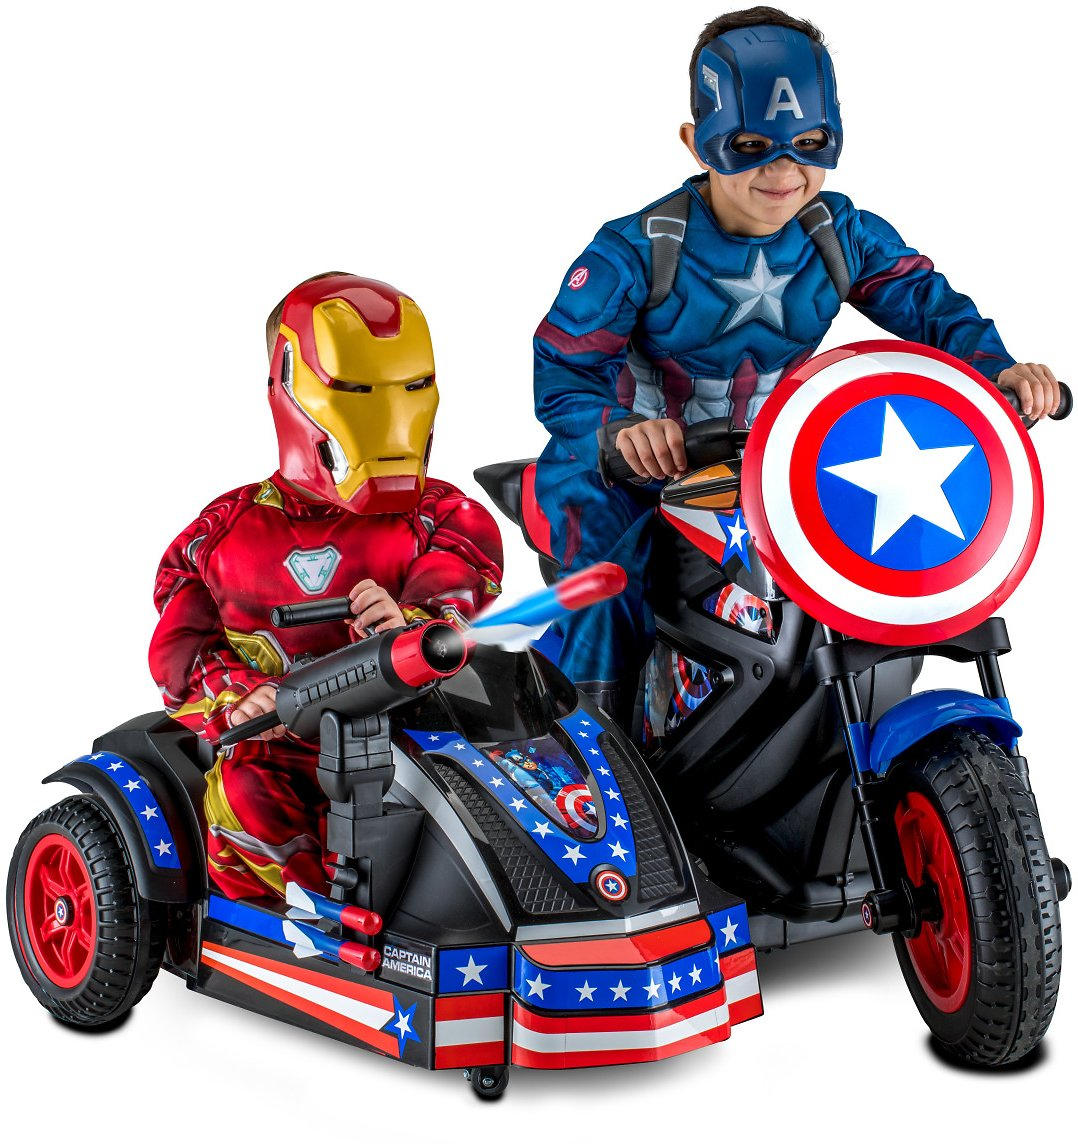 12-Volt Captain America Motorcycle Ride-On + F/S